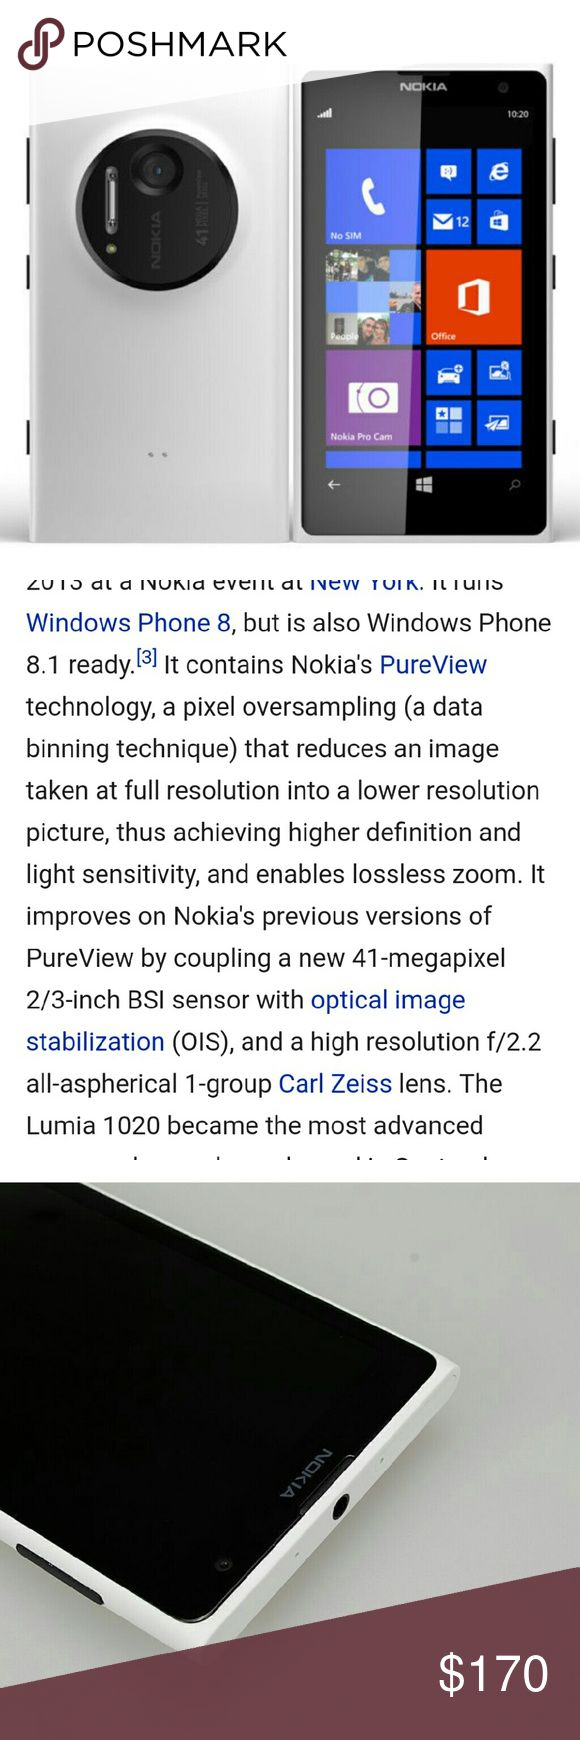 NOKIA LUMINA WINDOWS PHONE White Nokia Lumina 1020 ,best camera phone to date on the market,  it is windows software, it is unlocked,  can be used with any carrier that uses a sum card... 41 mega pixel camera is absolutely amazing, professional pics and videos Nokia Other